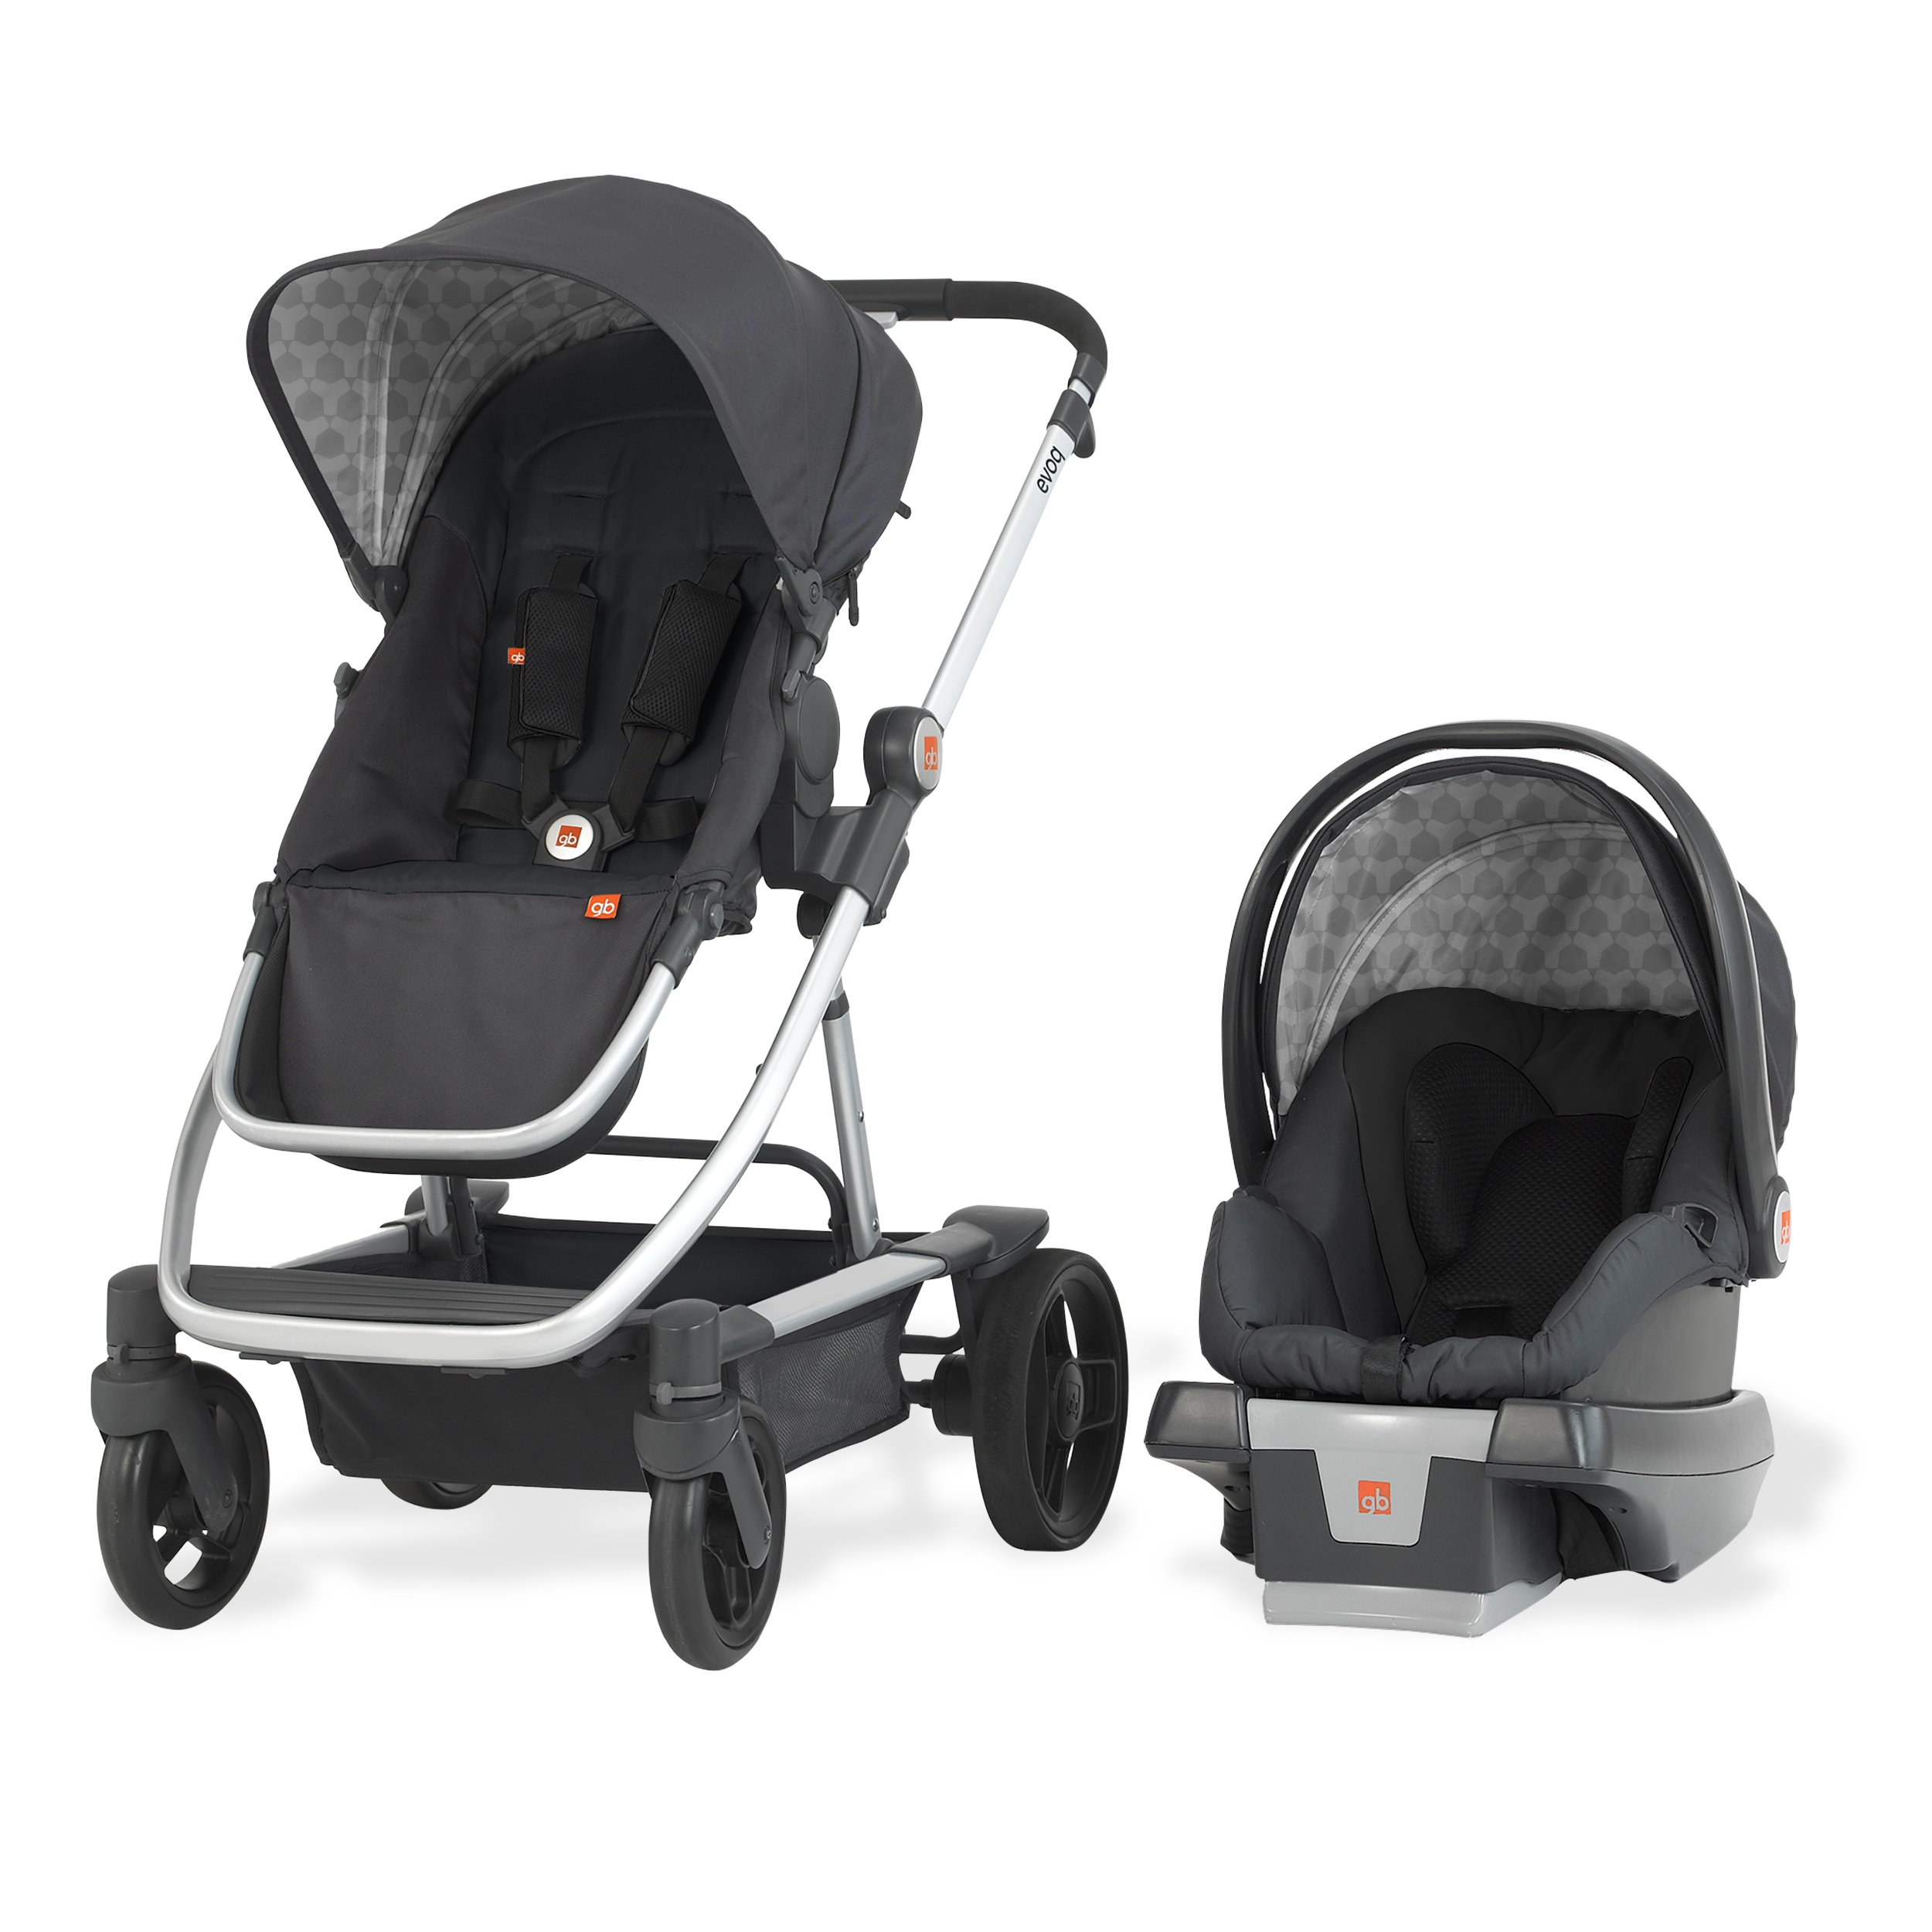 Amazon.com : GB Asana 35 Infant Car Seat Base : Baby